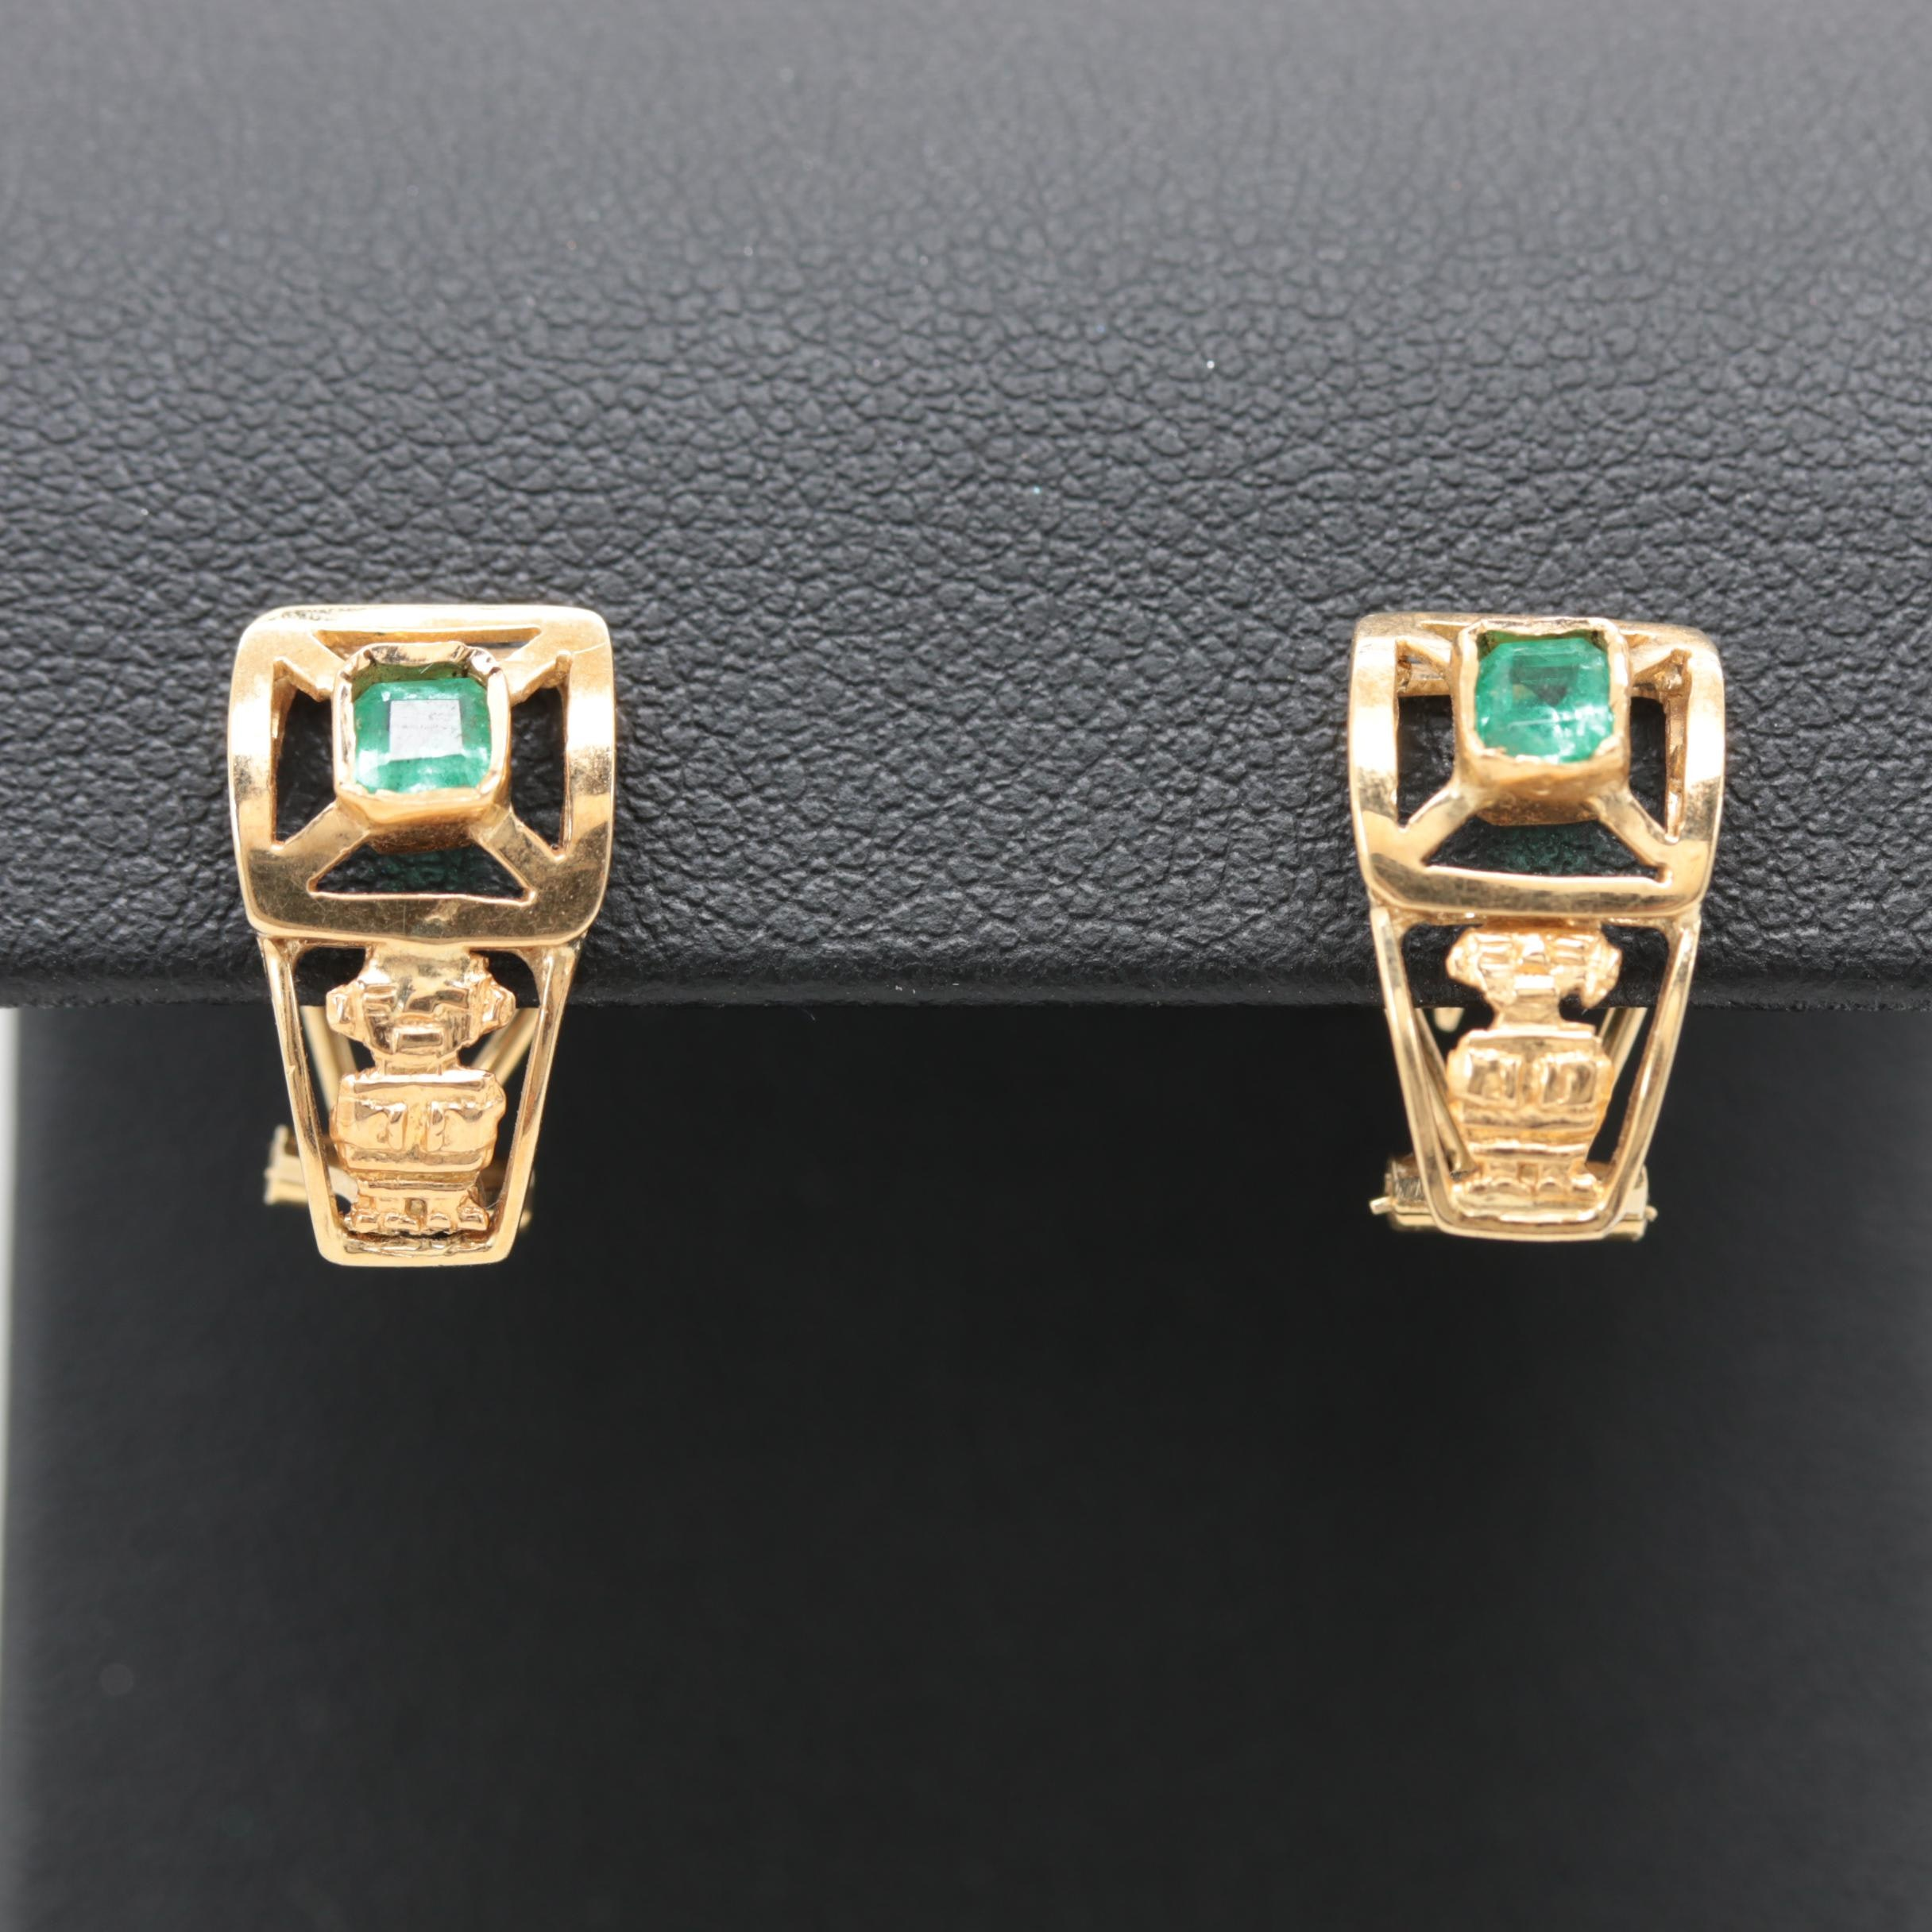 14K Yellow Gold and Gold Tone Emerald Earrings